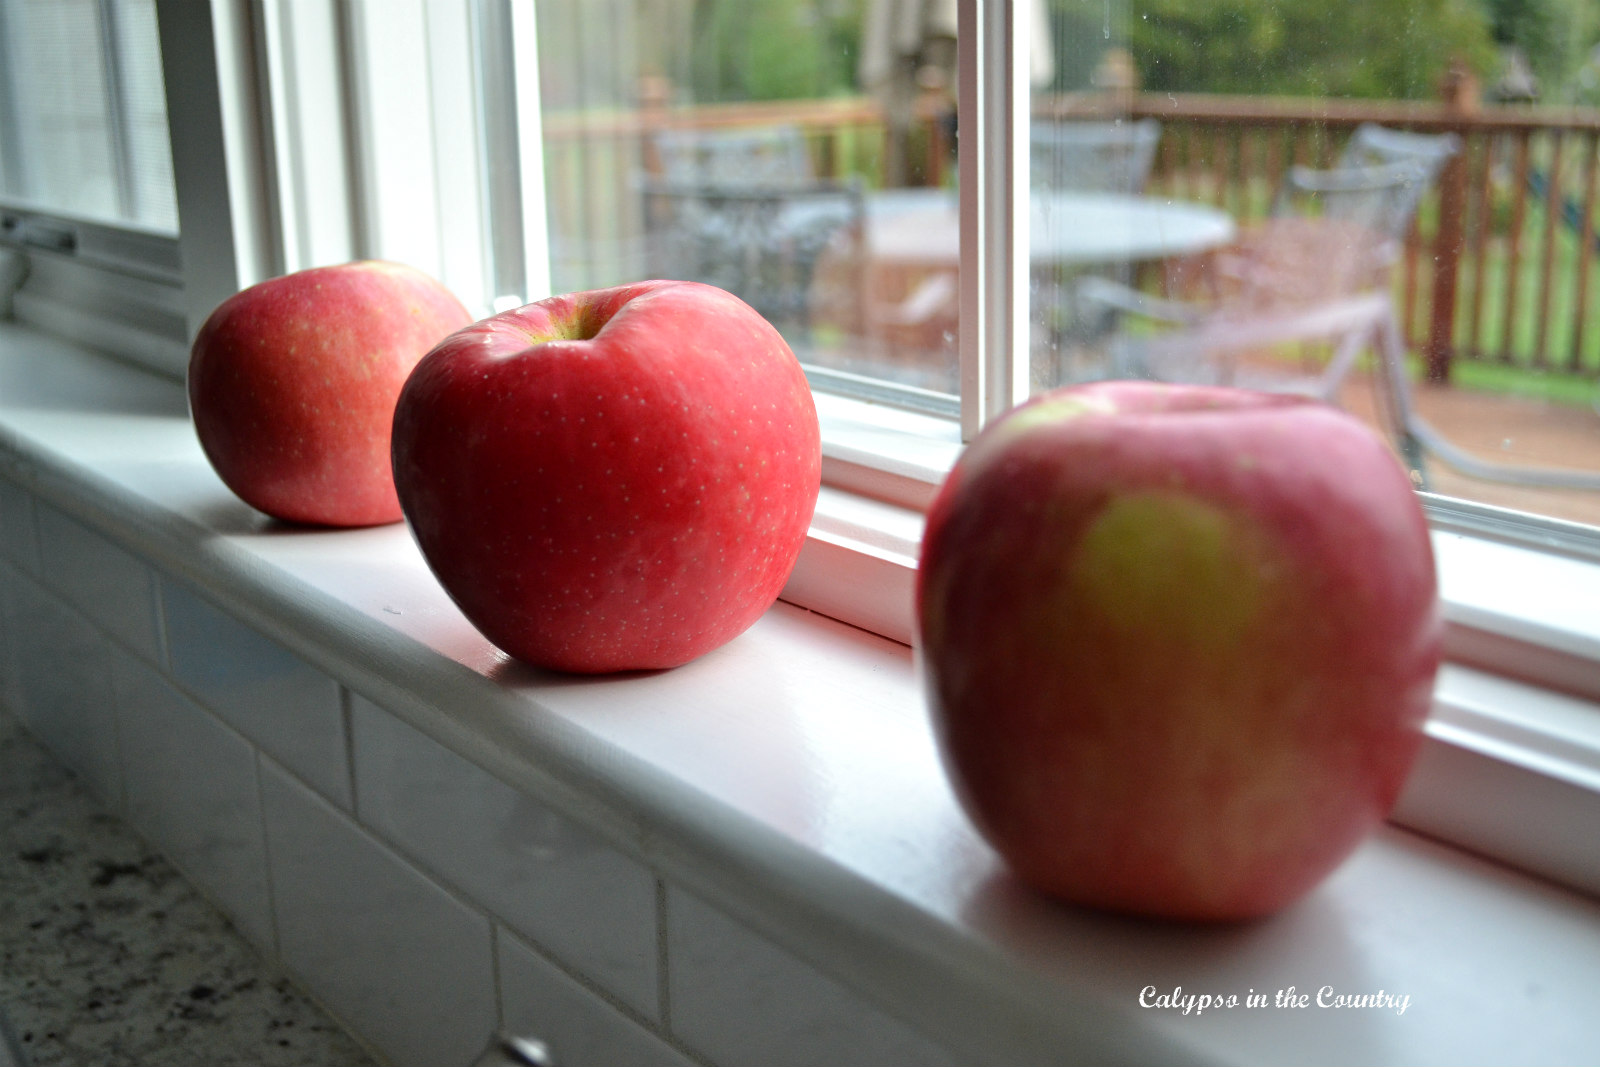 Apples on the windowsill